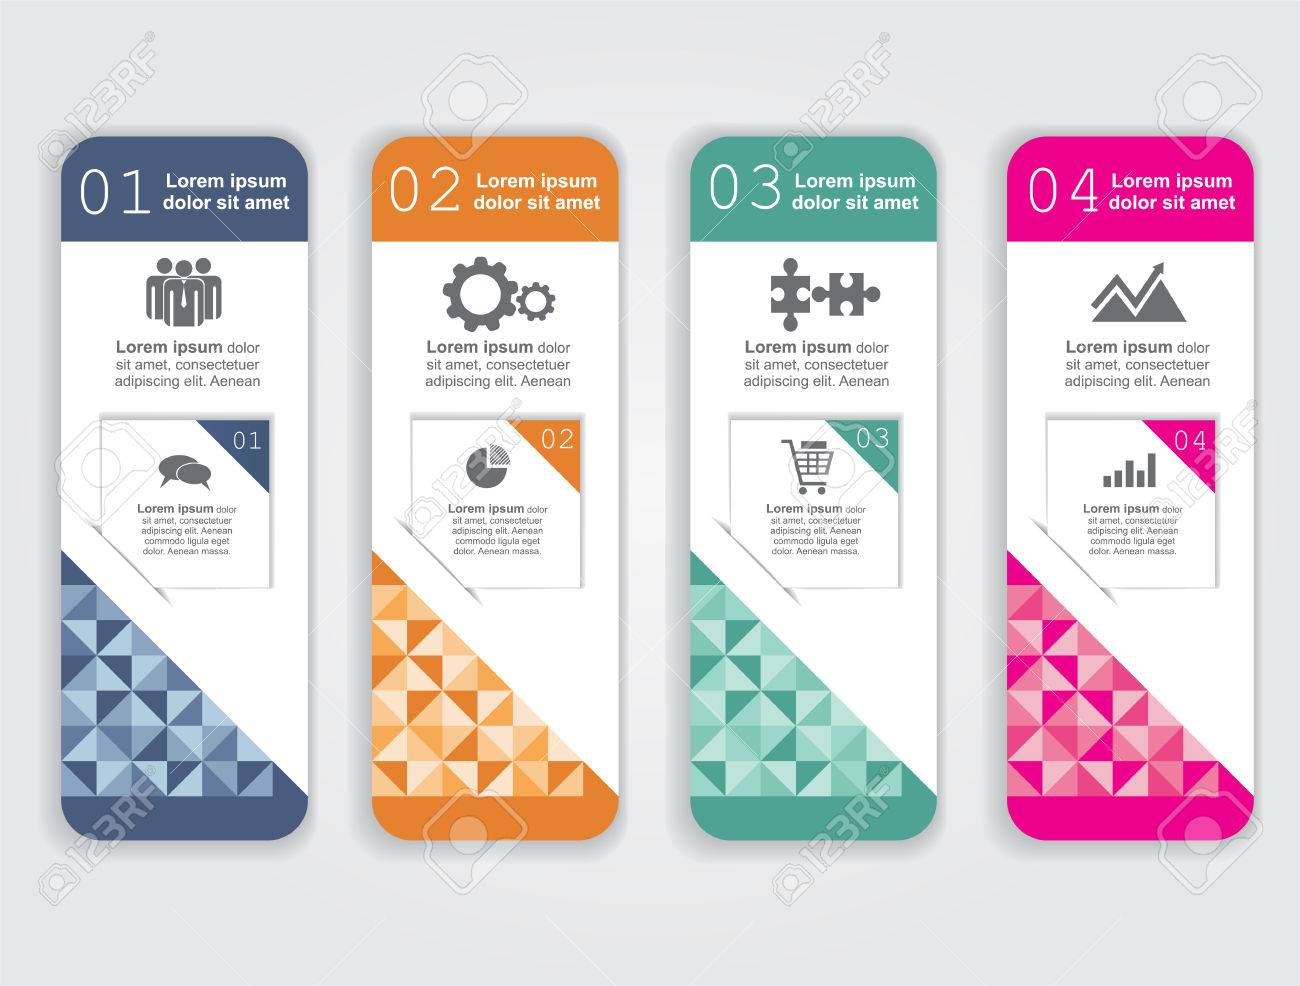 Abstract infographic. Vector illustration. - 35871998